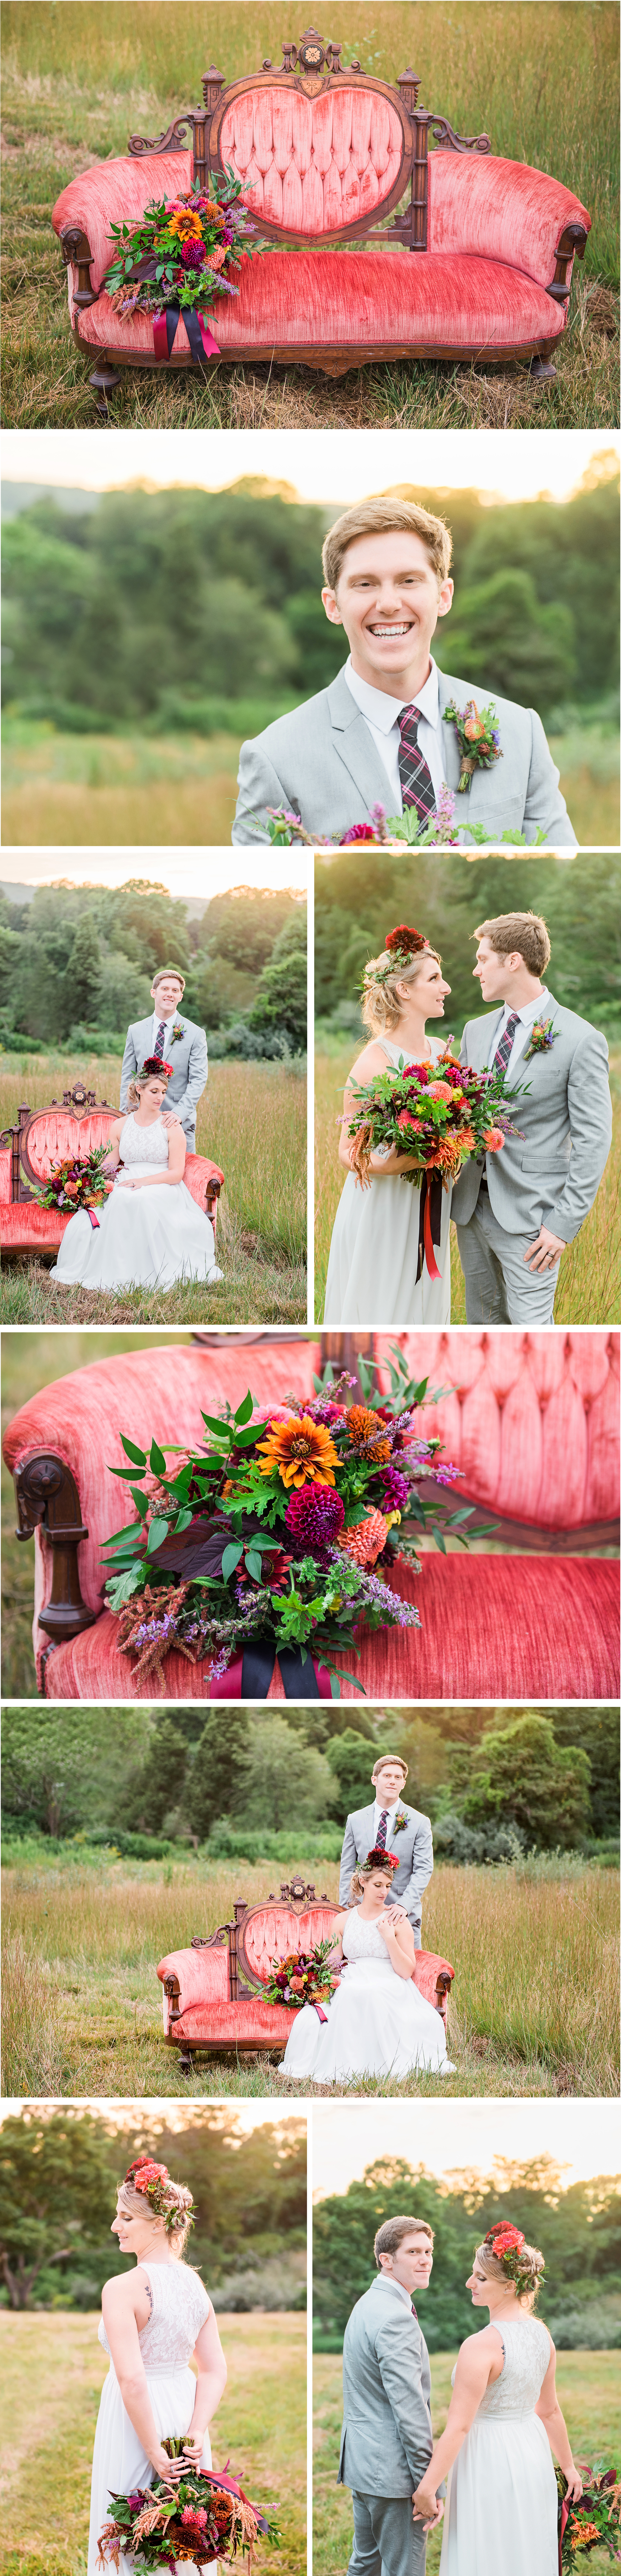 Connecticut Boho Bridal Wedding S and P 3